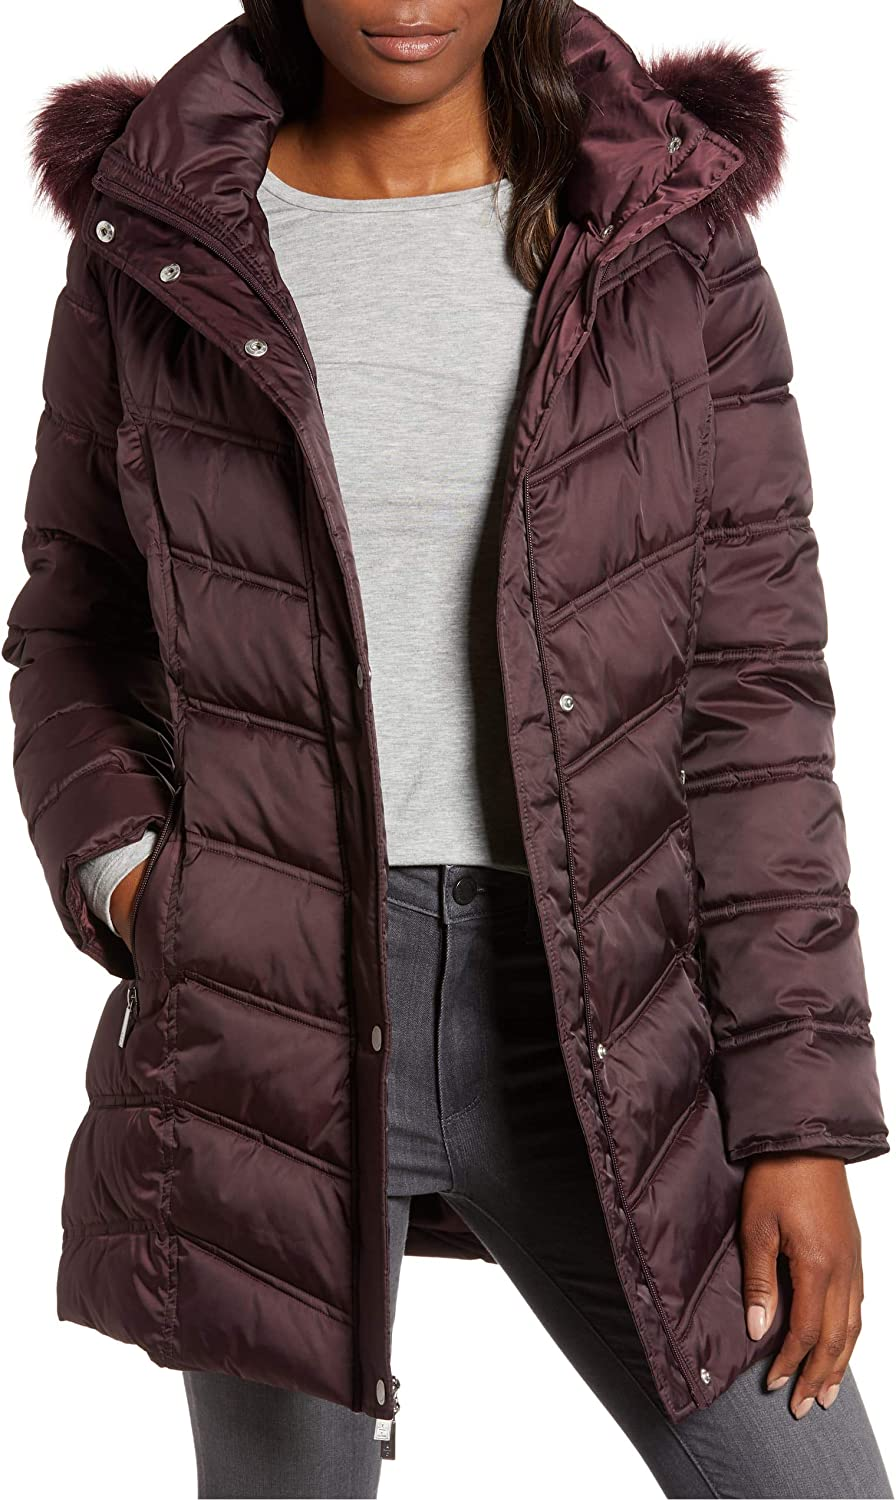 Kenneth Cole Women's Mid-Length Chevron Ho Ranking TOP9 Jacket Puffer Quilted San Diego Mall